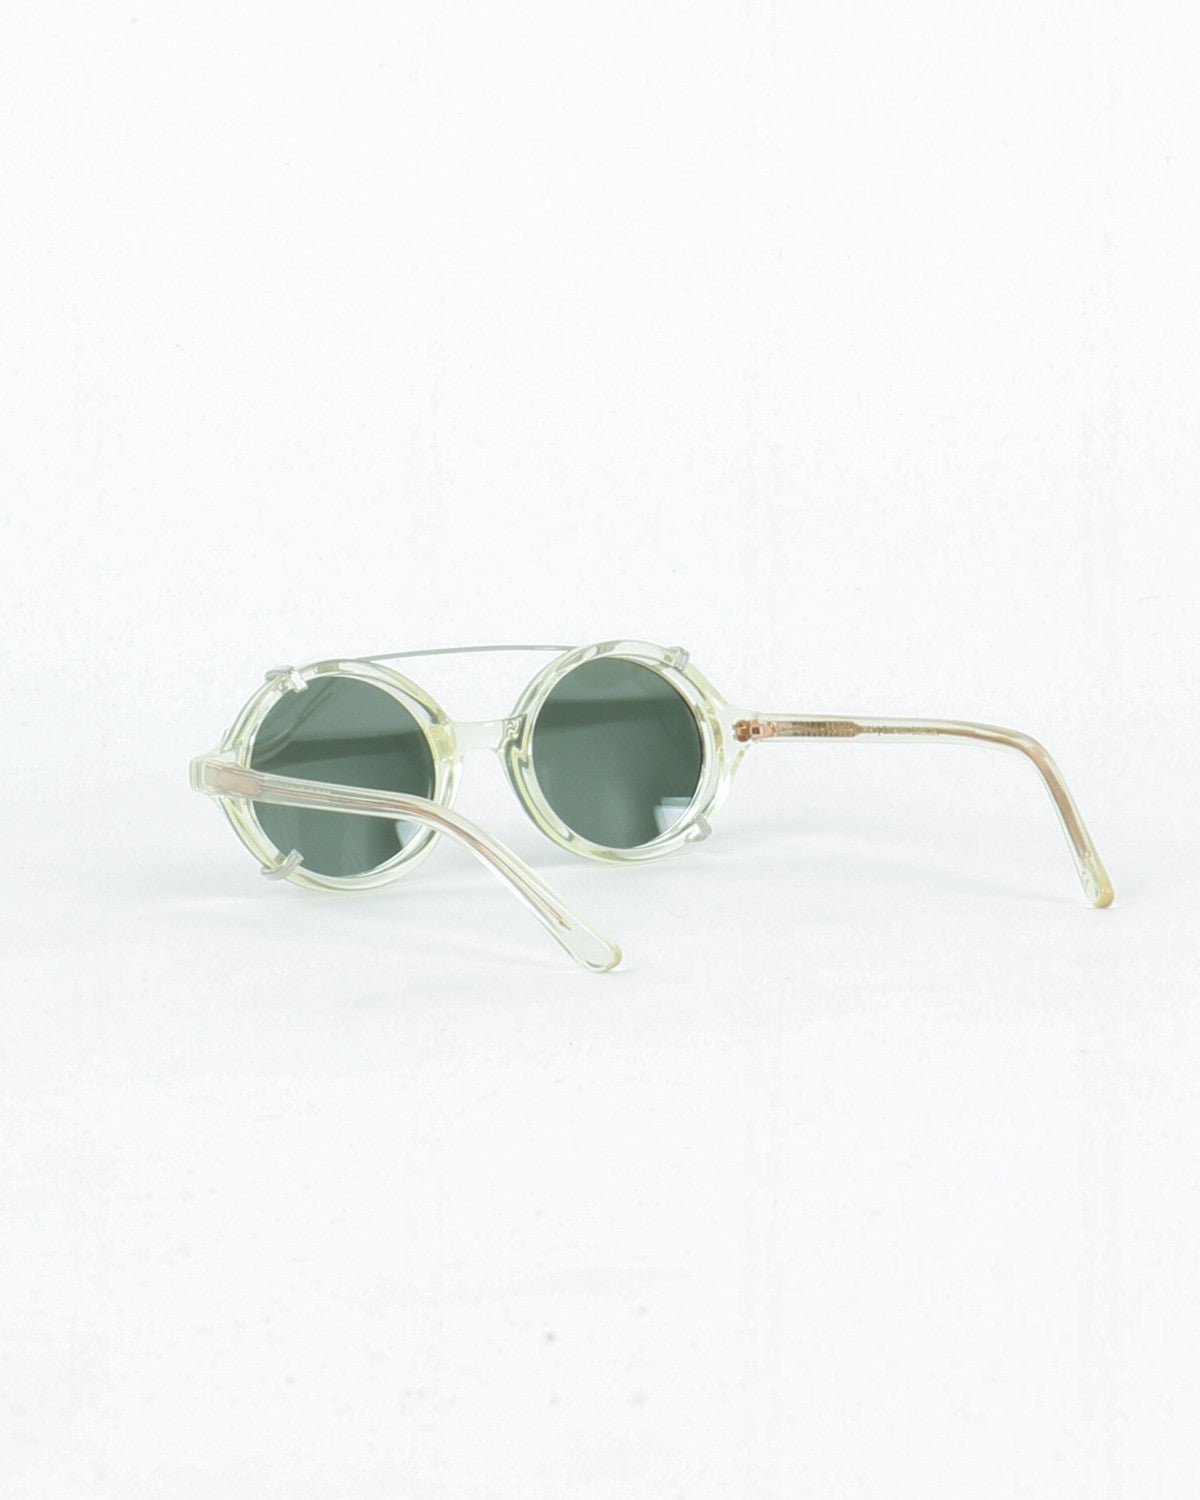 han kjobenhavn_doc clip on_sunglasses_champagne clear_view_2_4